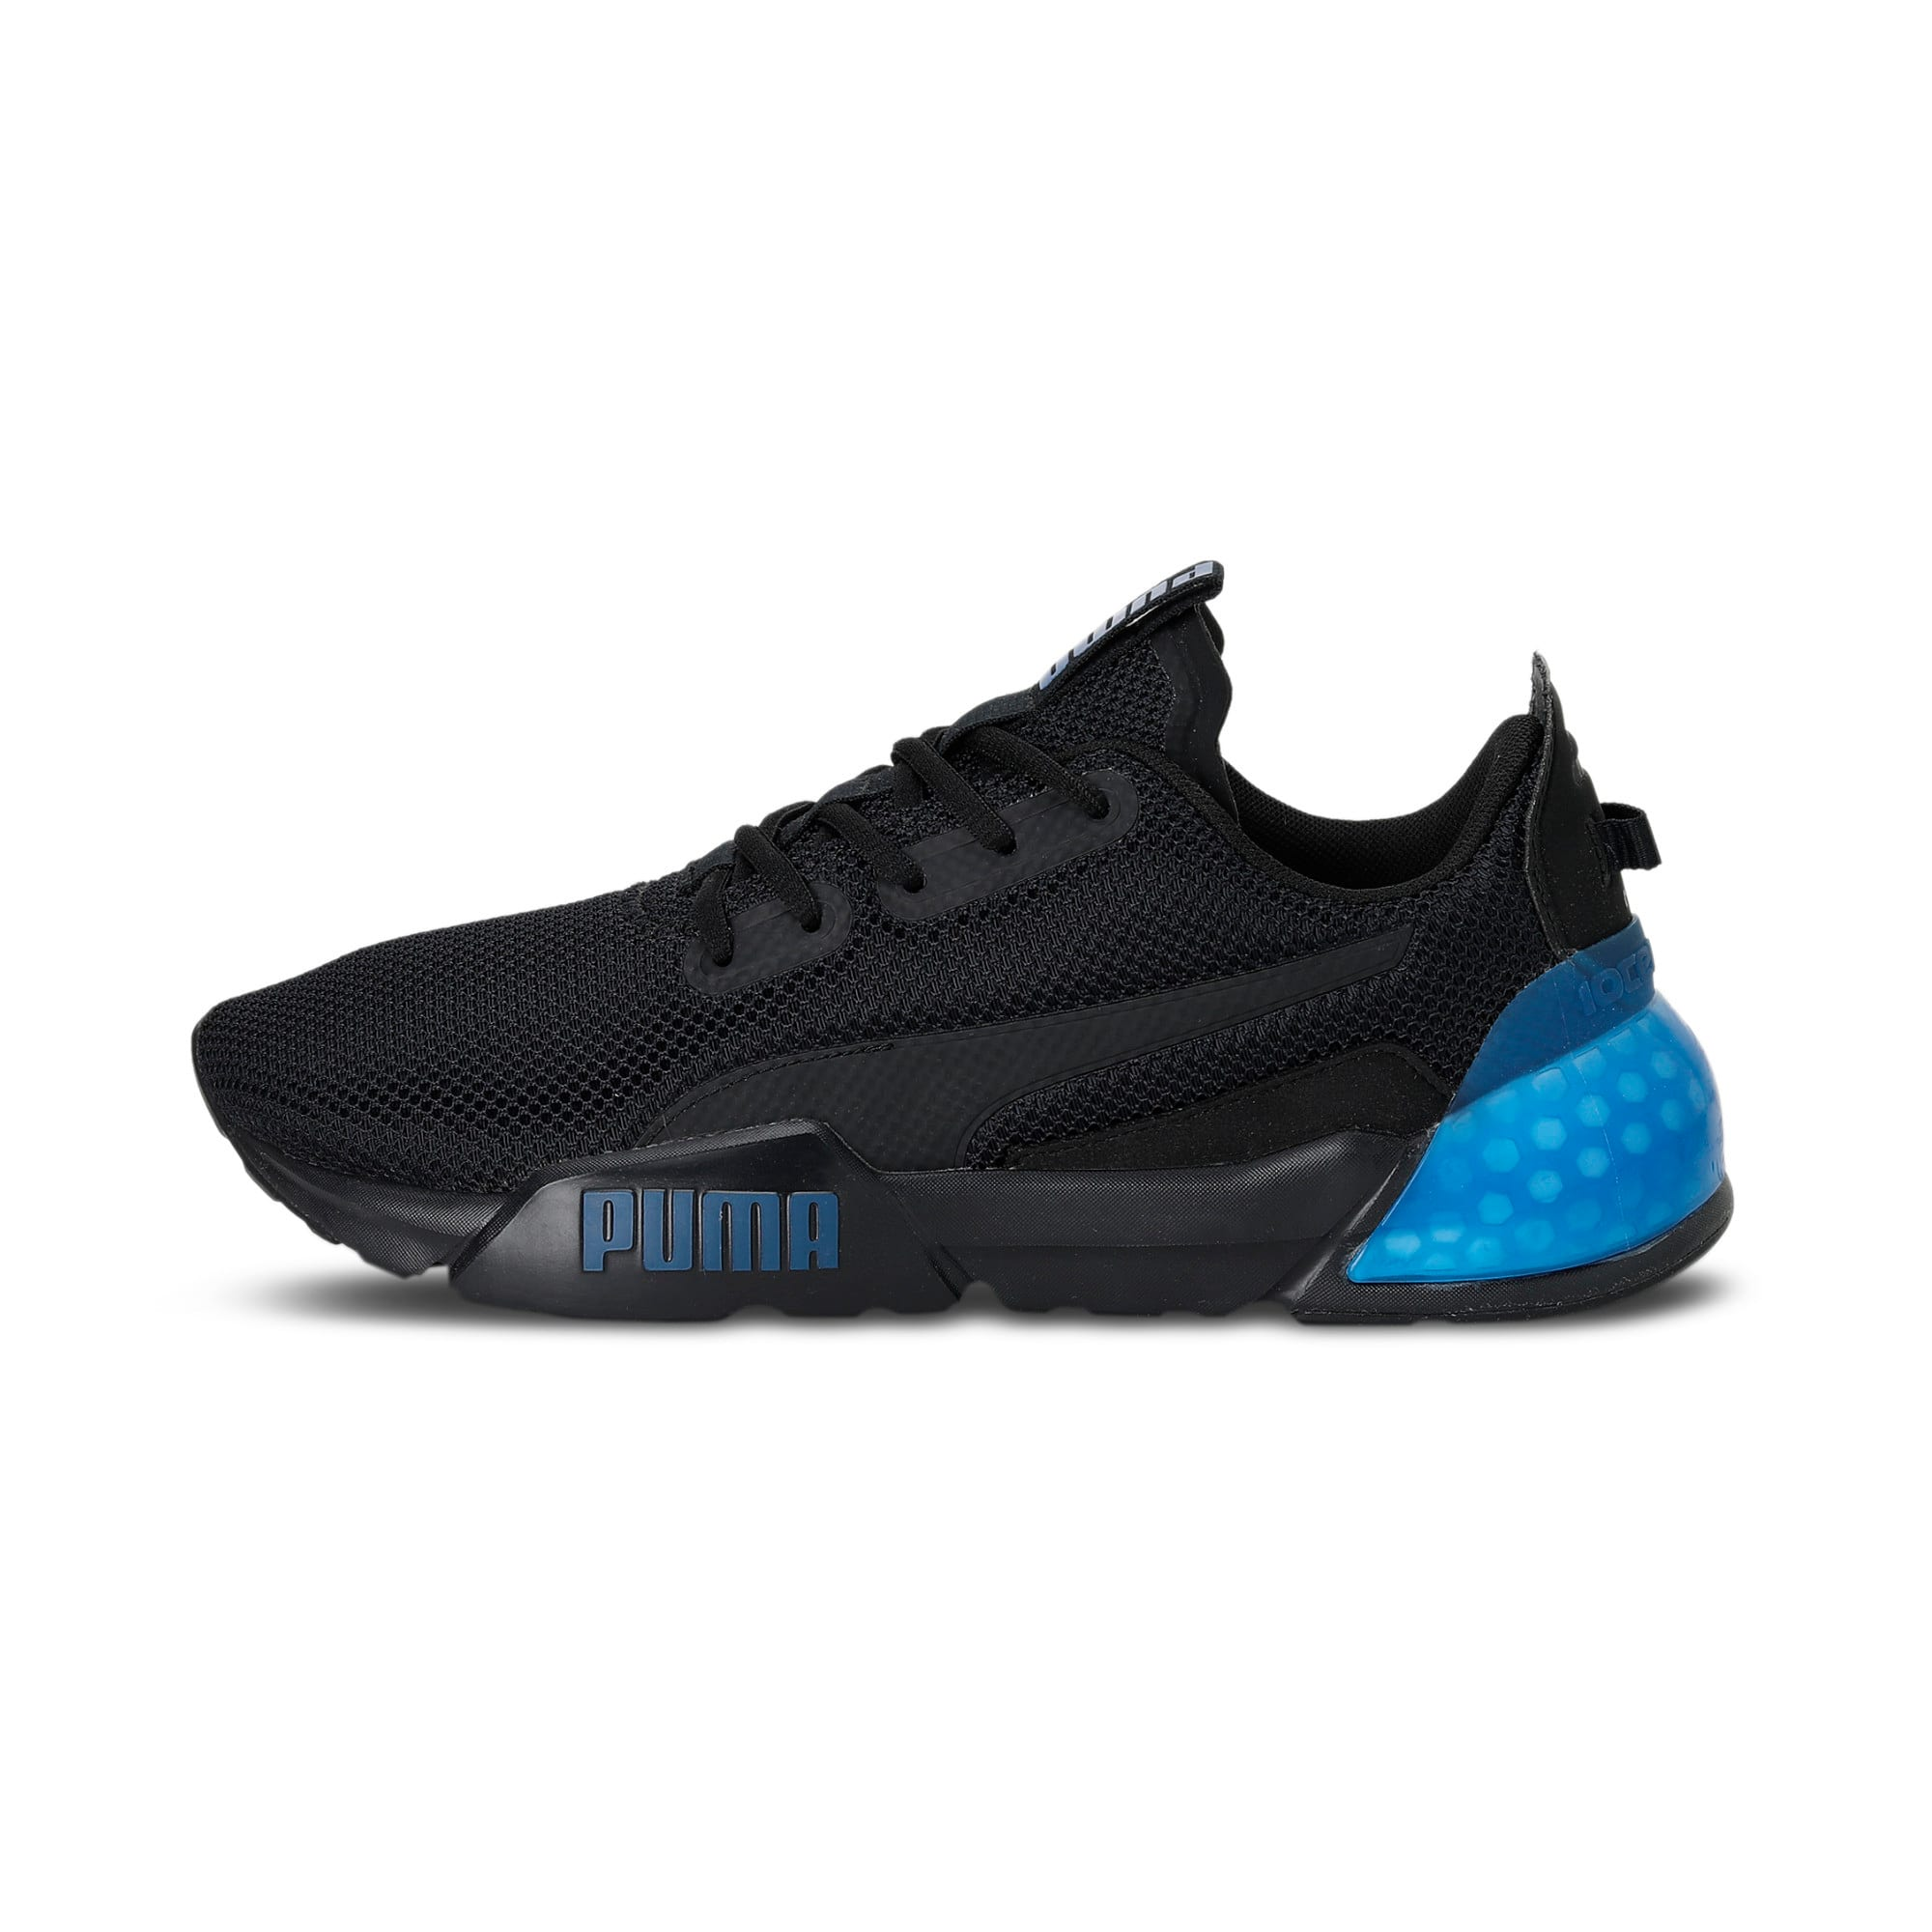 Thumbnail 1 of CELL Phase Men's Running Trainers, Puma Black-Galaxy Blue, medium-IND